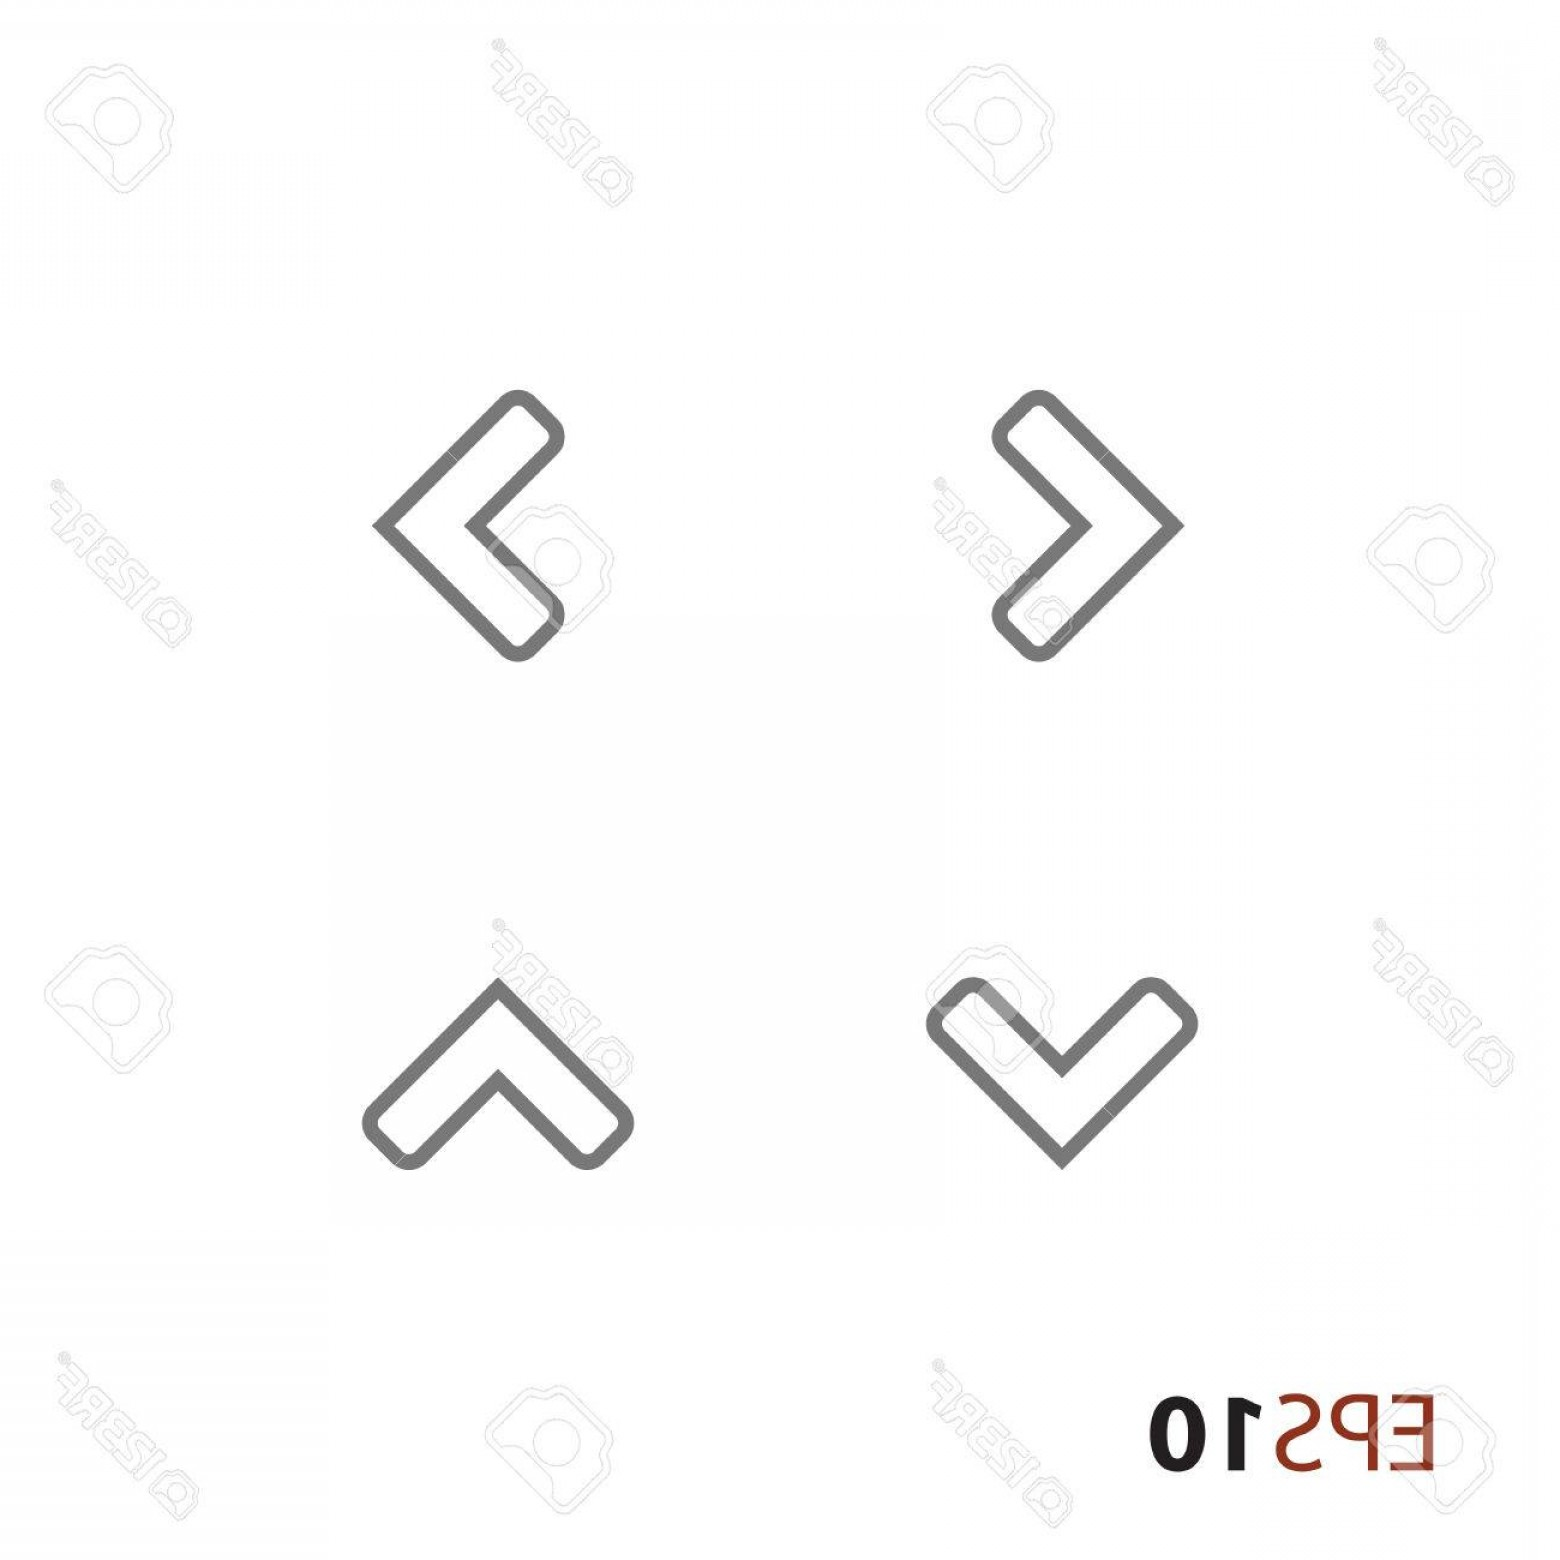 Up And Right Arrows Vector: Photostock Vector Up Down Left Right Arrows For Web